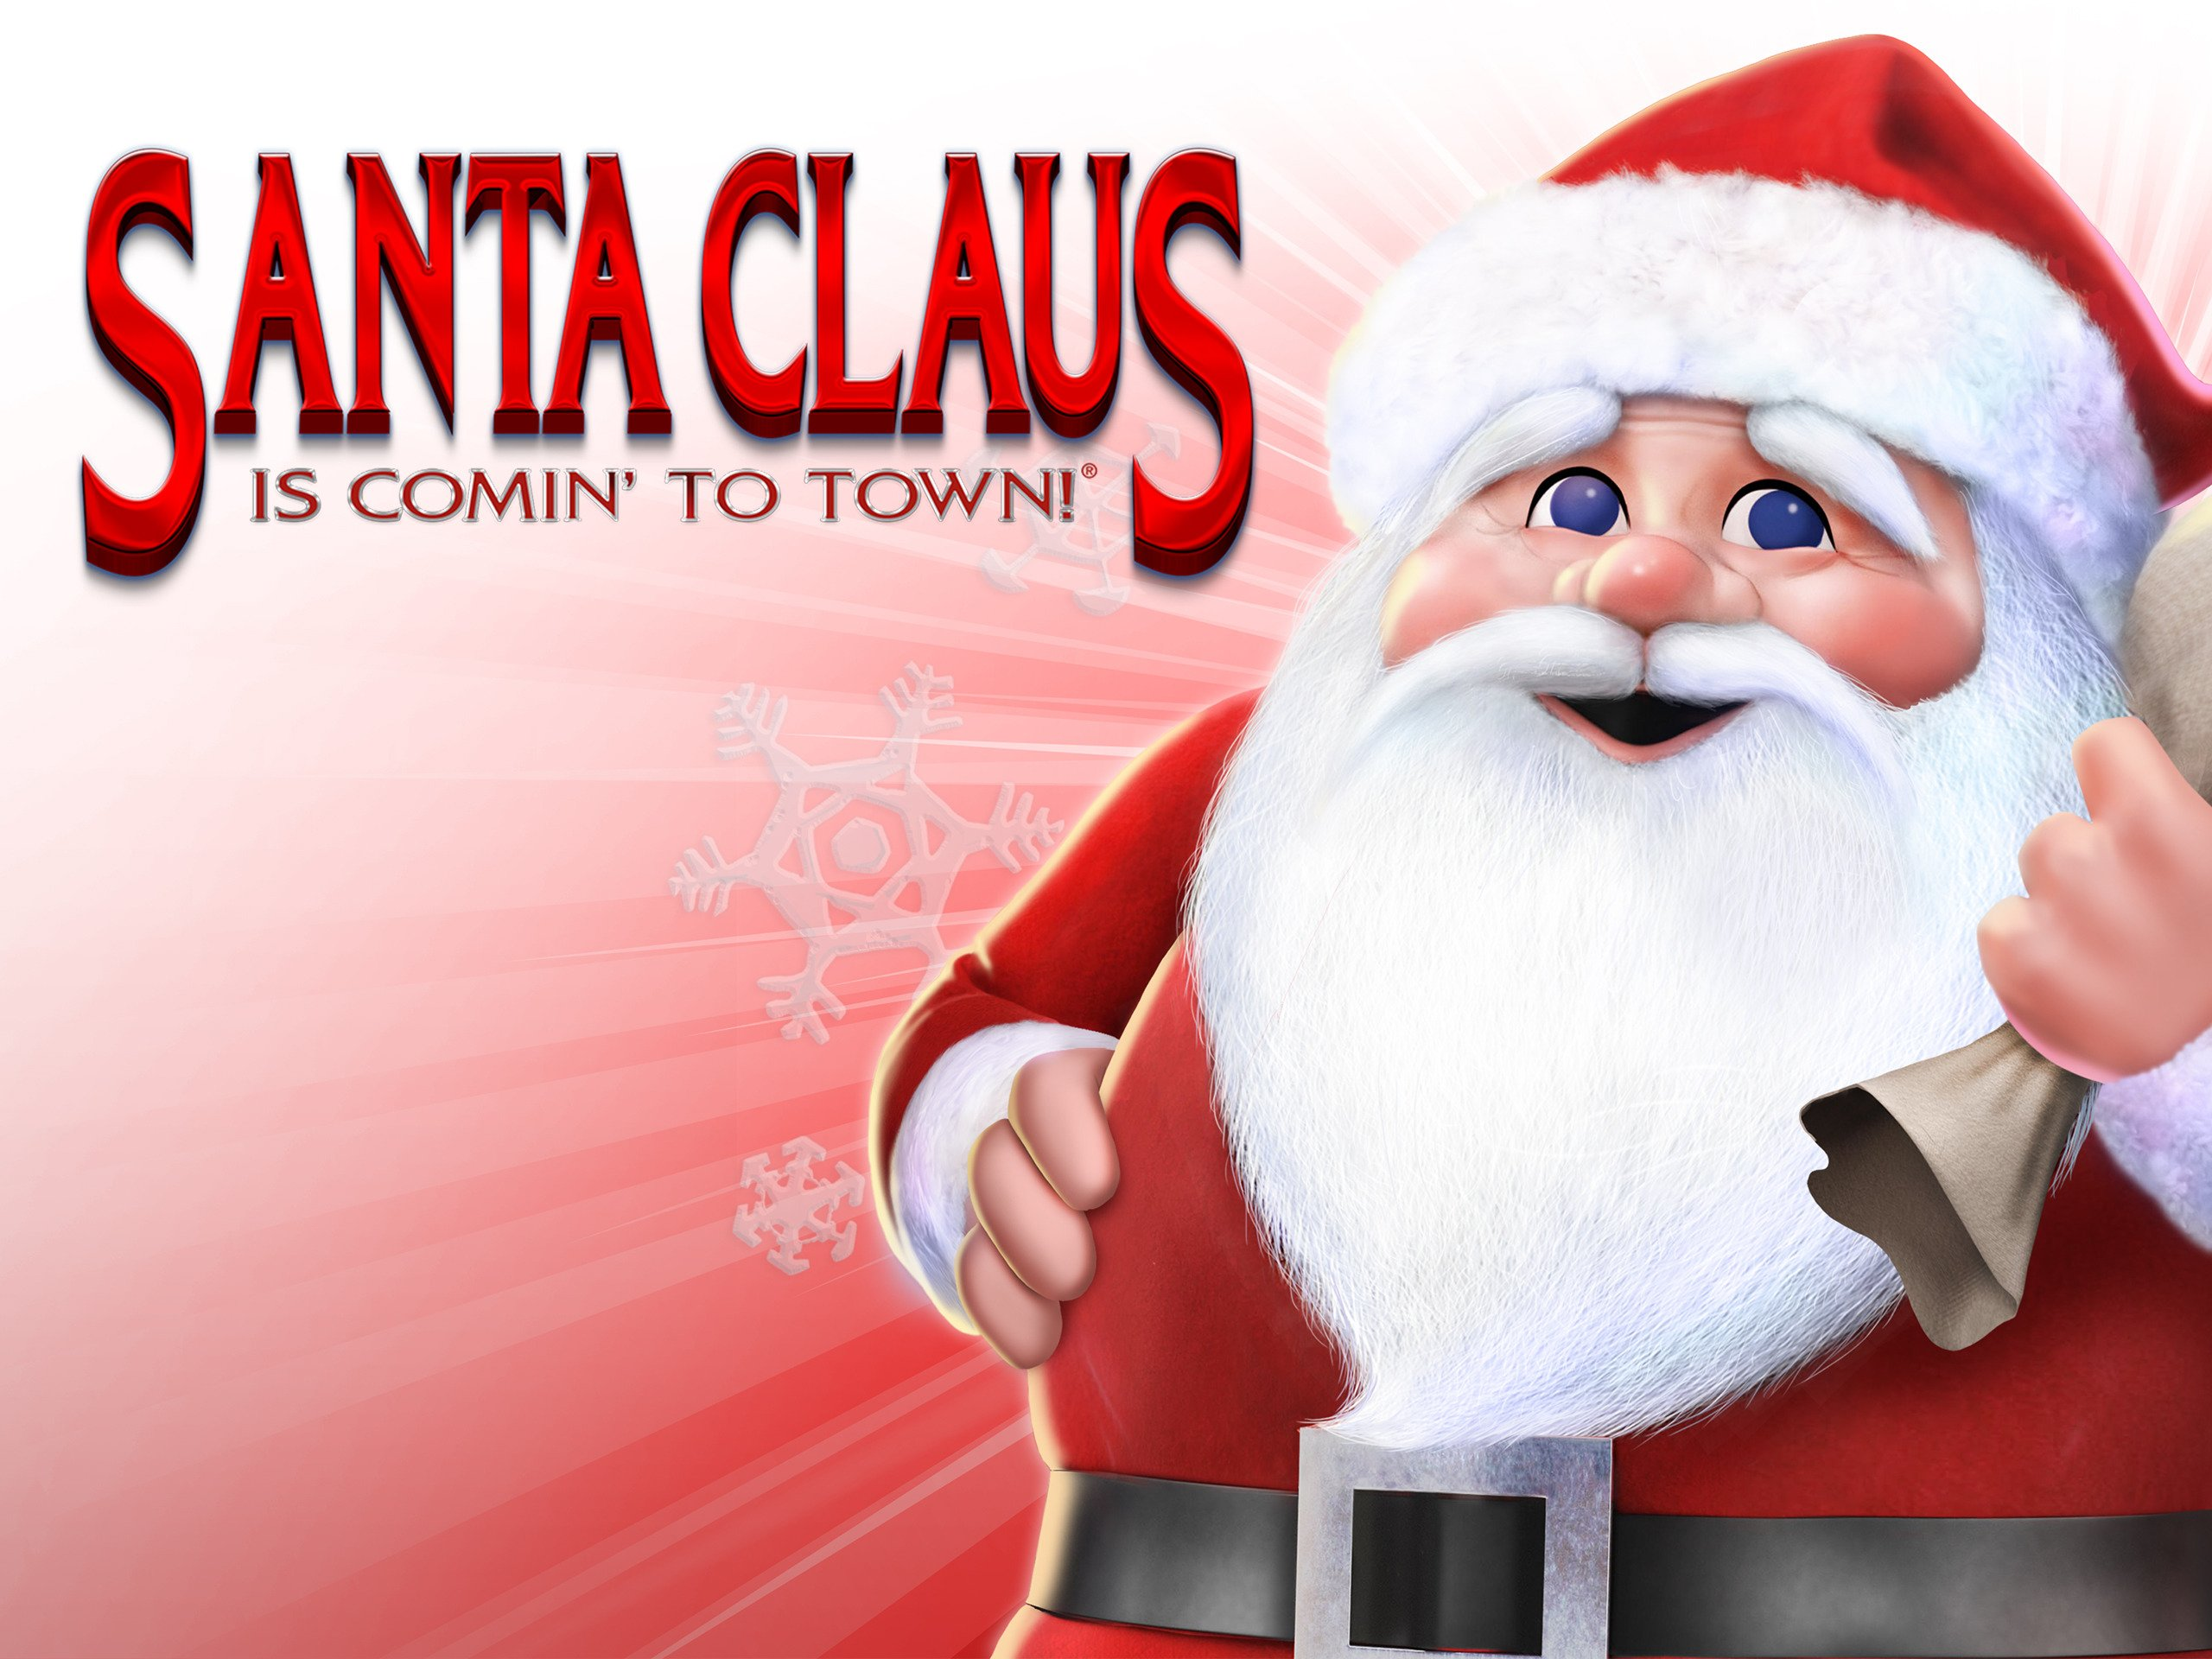 Local communities set to welcome Santa Claus!